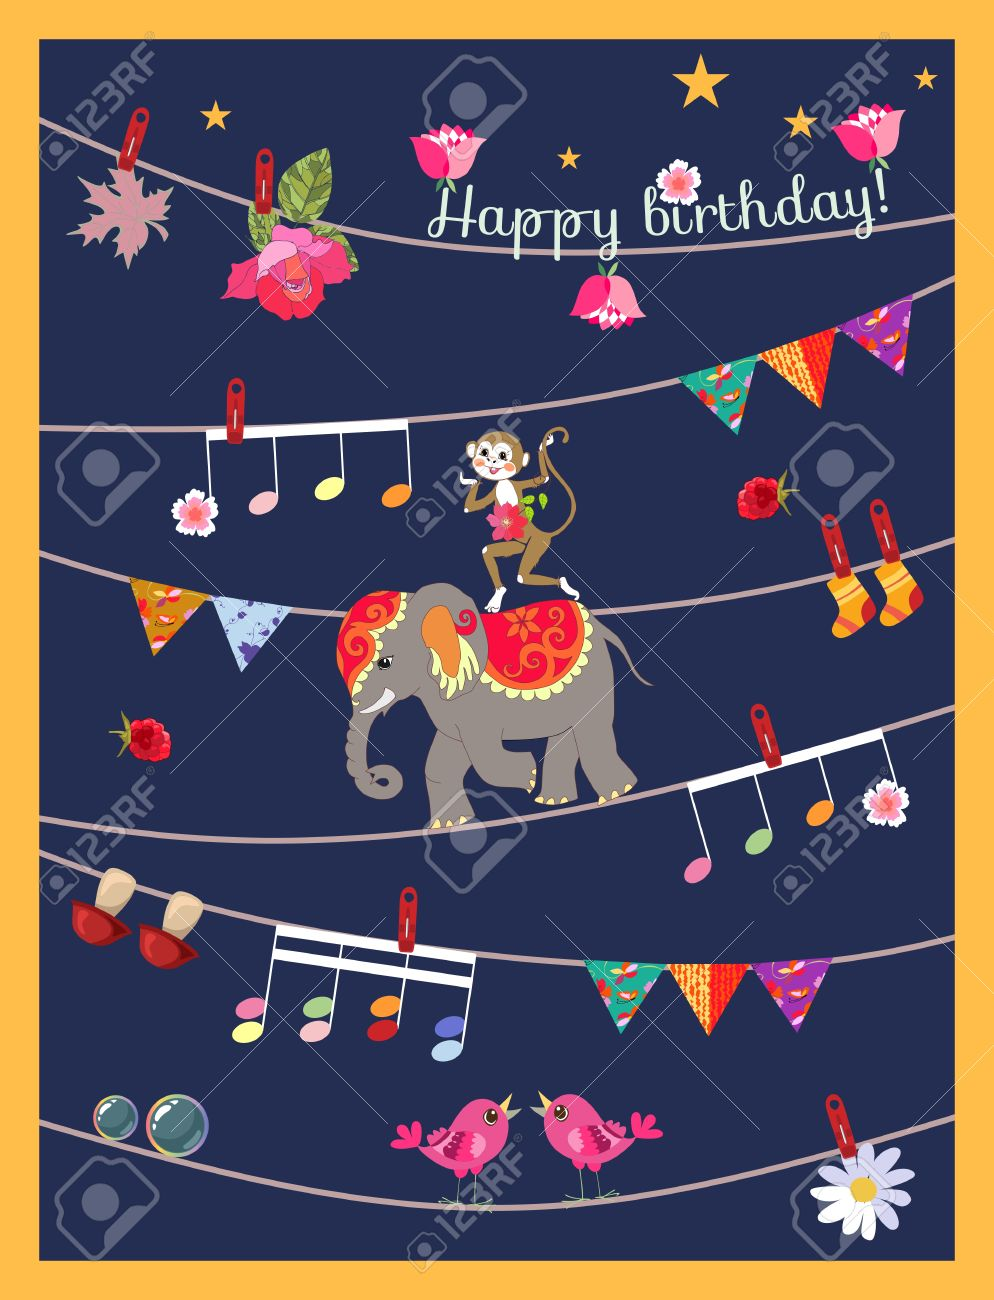 Greeting Card Happy Birthday With Cute Cartoon Monkey Elephant Garland Musical Notes